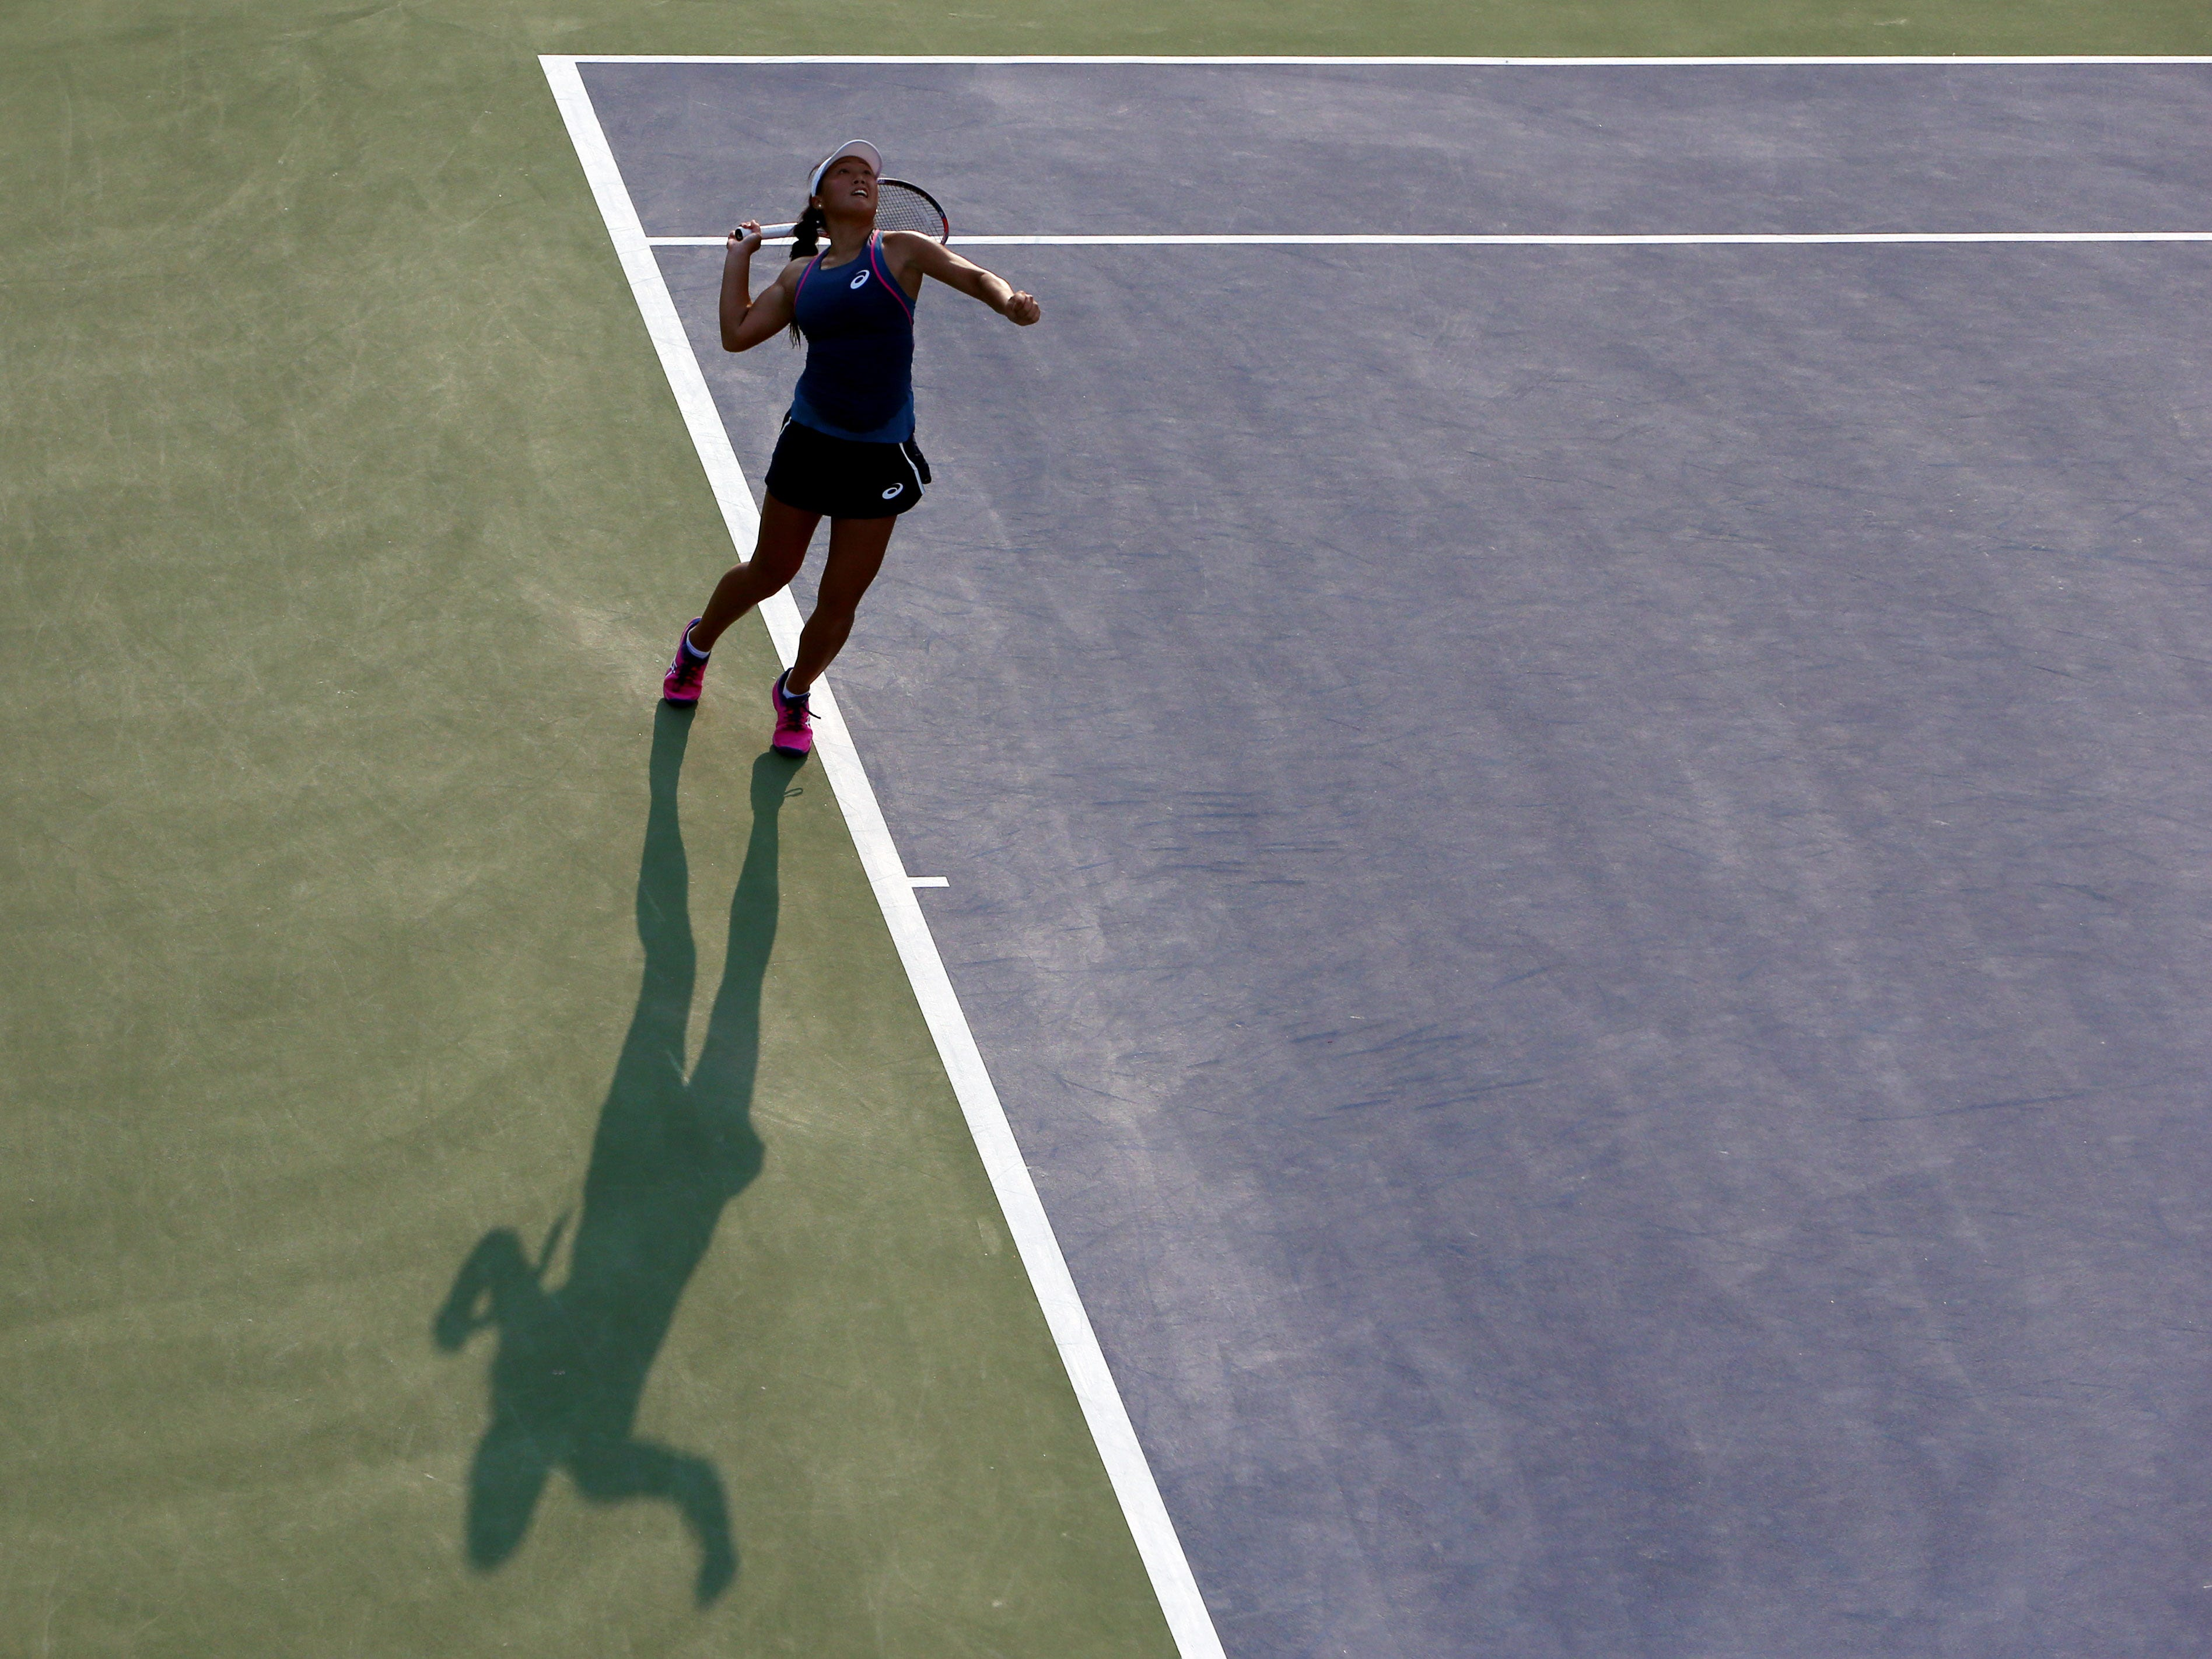 The shadows, and evening, arrive as Claire Liu of the USA serves  to Polona Hercog of Slovenia. Liu won  7-6 (4), 1-6, 6-4.